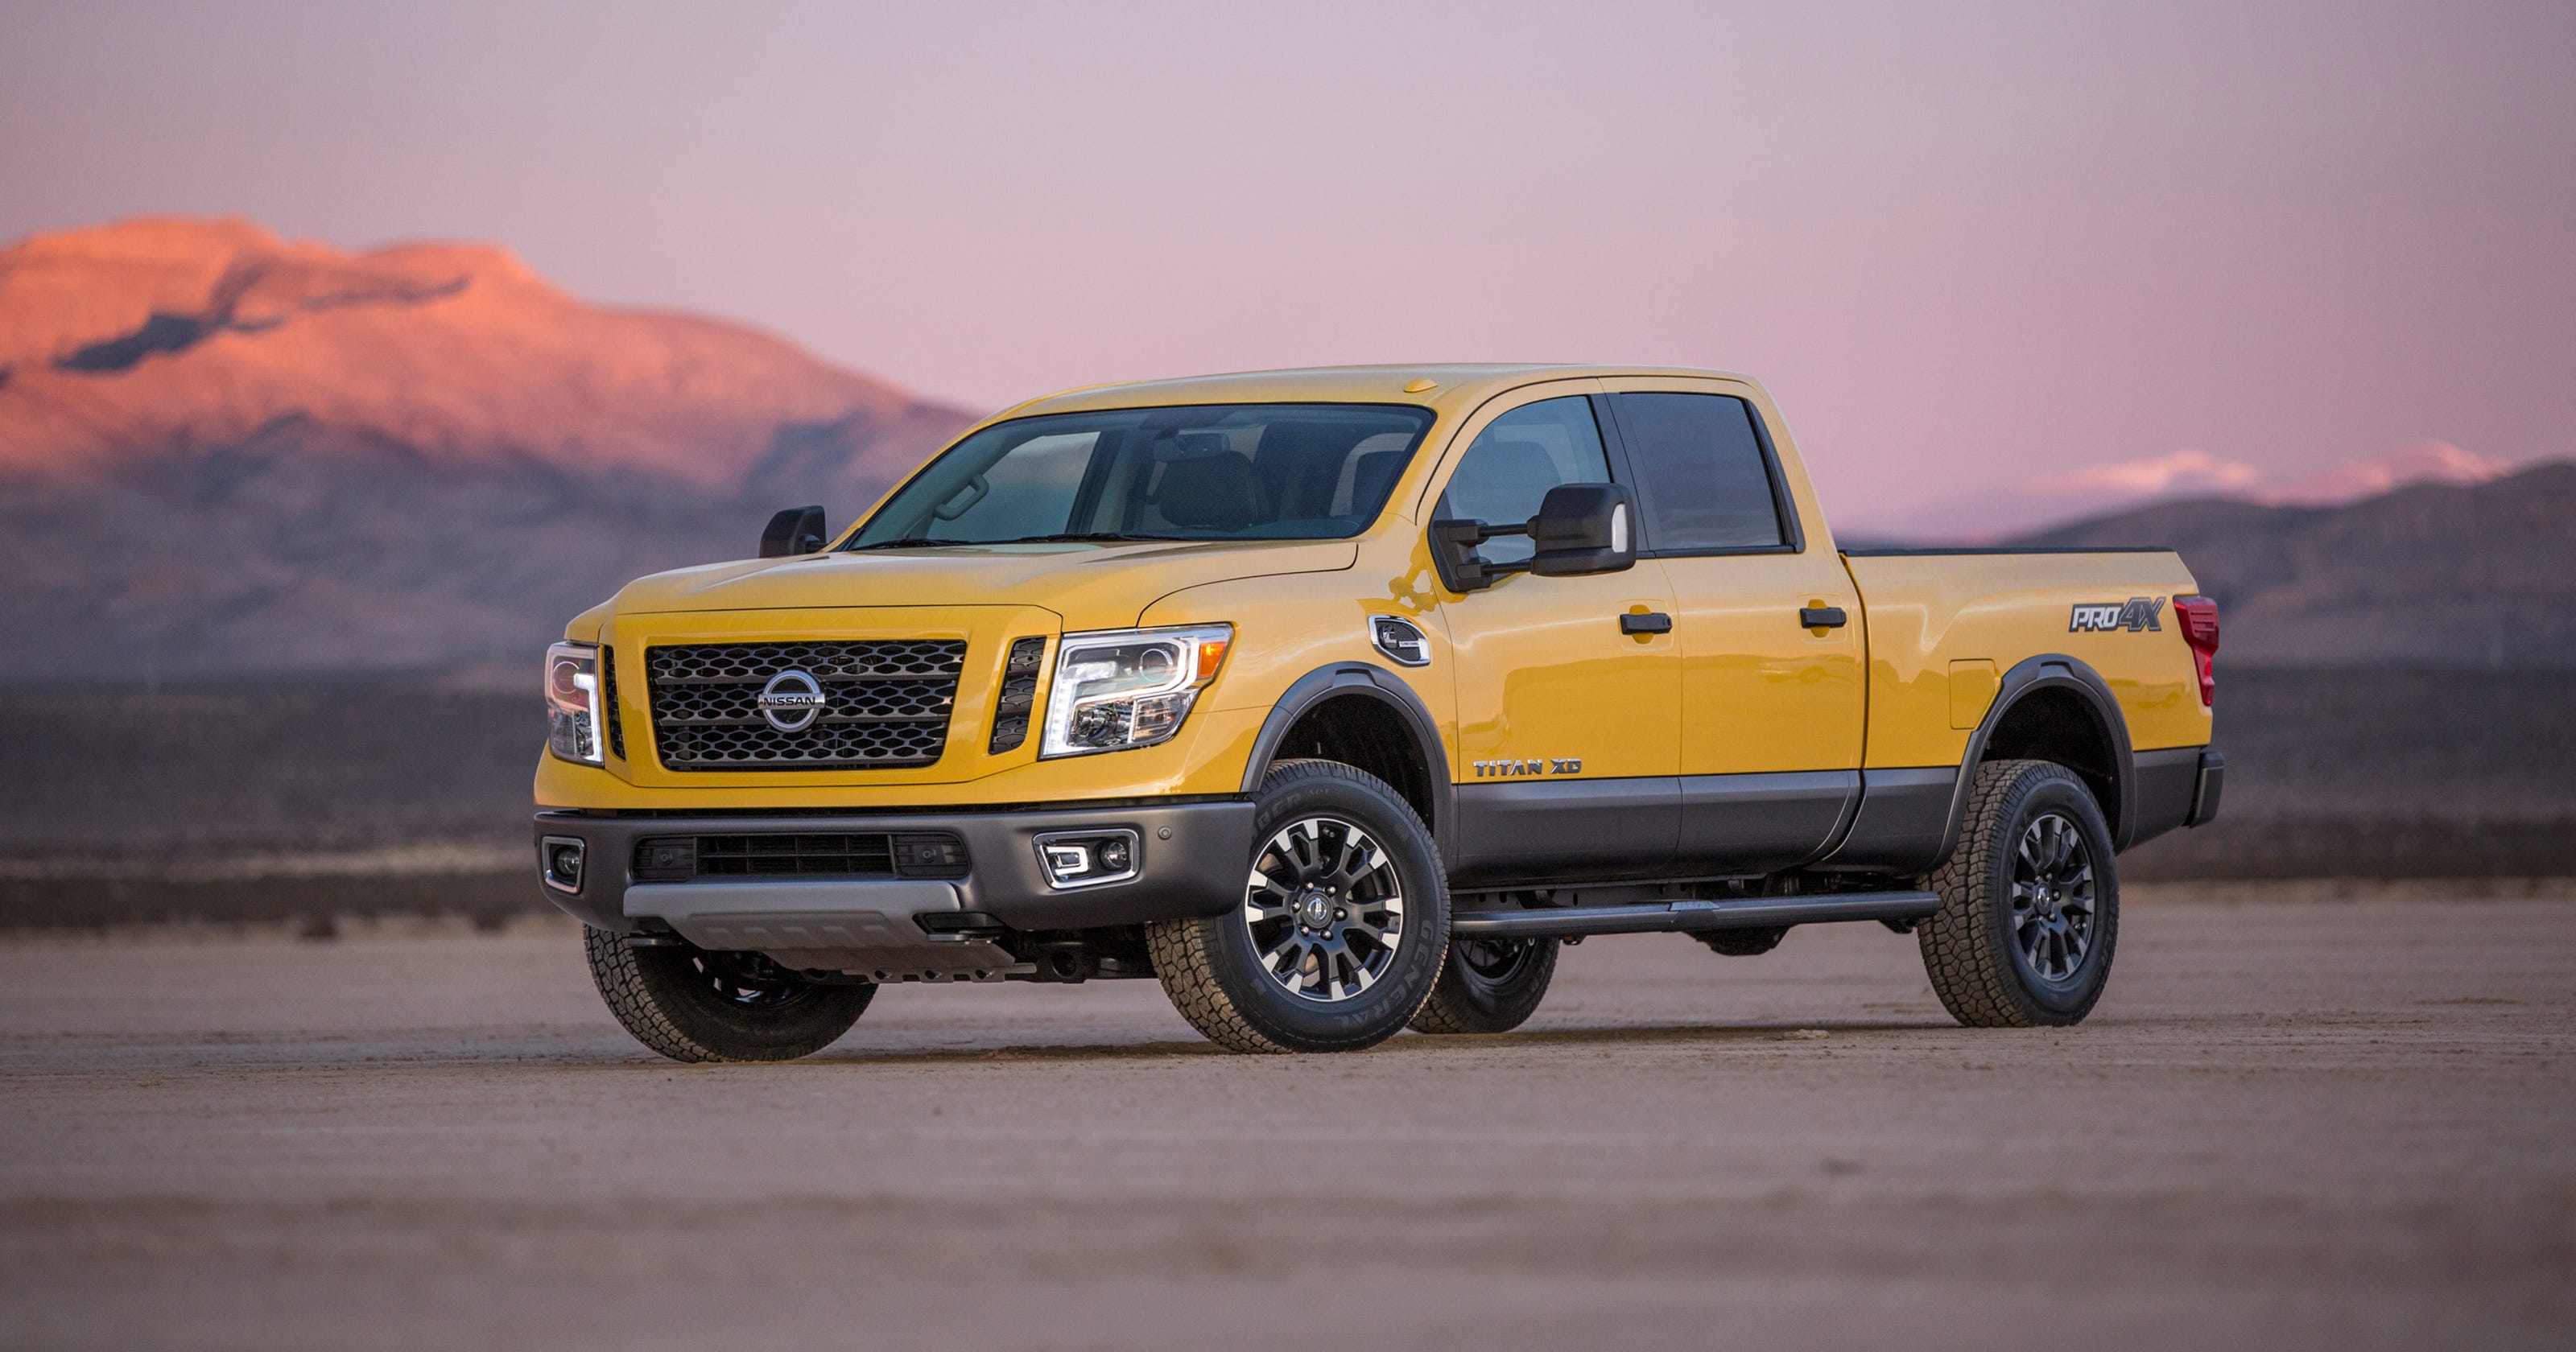 Review Nissan Titan Xd Challenges Detroit 3 Hd Trucks Big Blue Jacked Up Chevy Truck